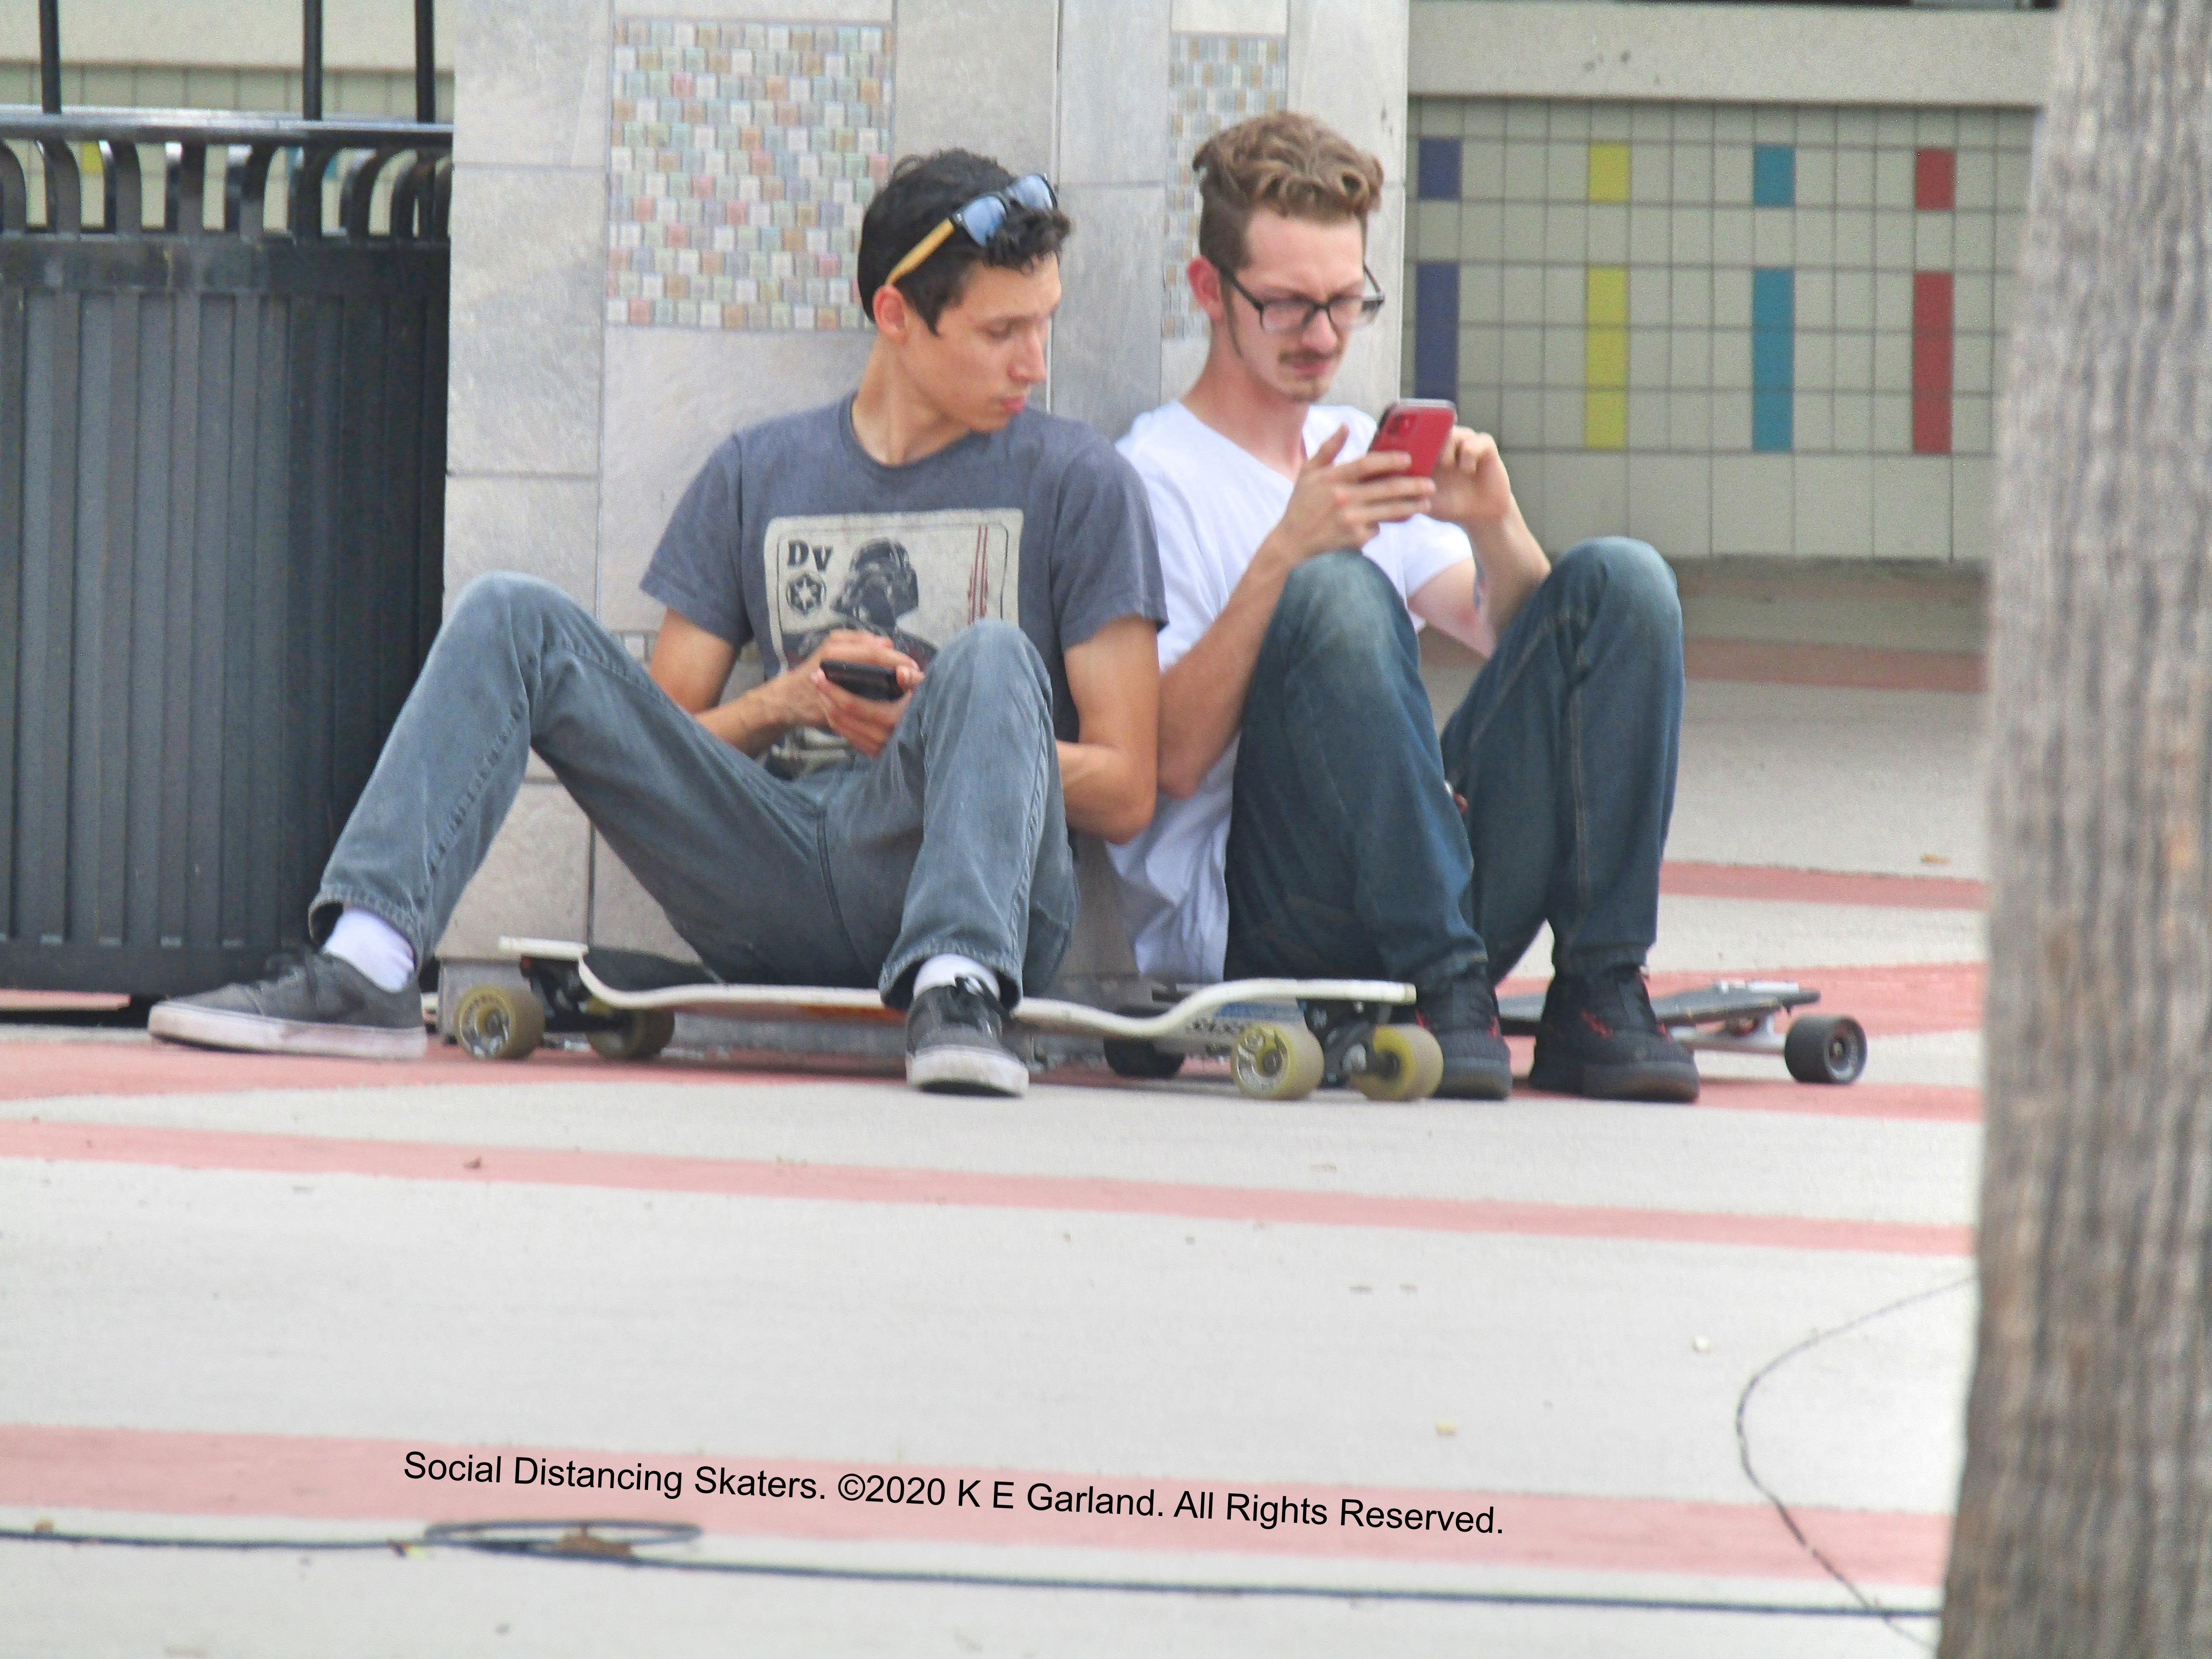 social_distancing_skaters2